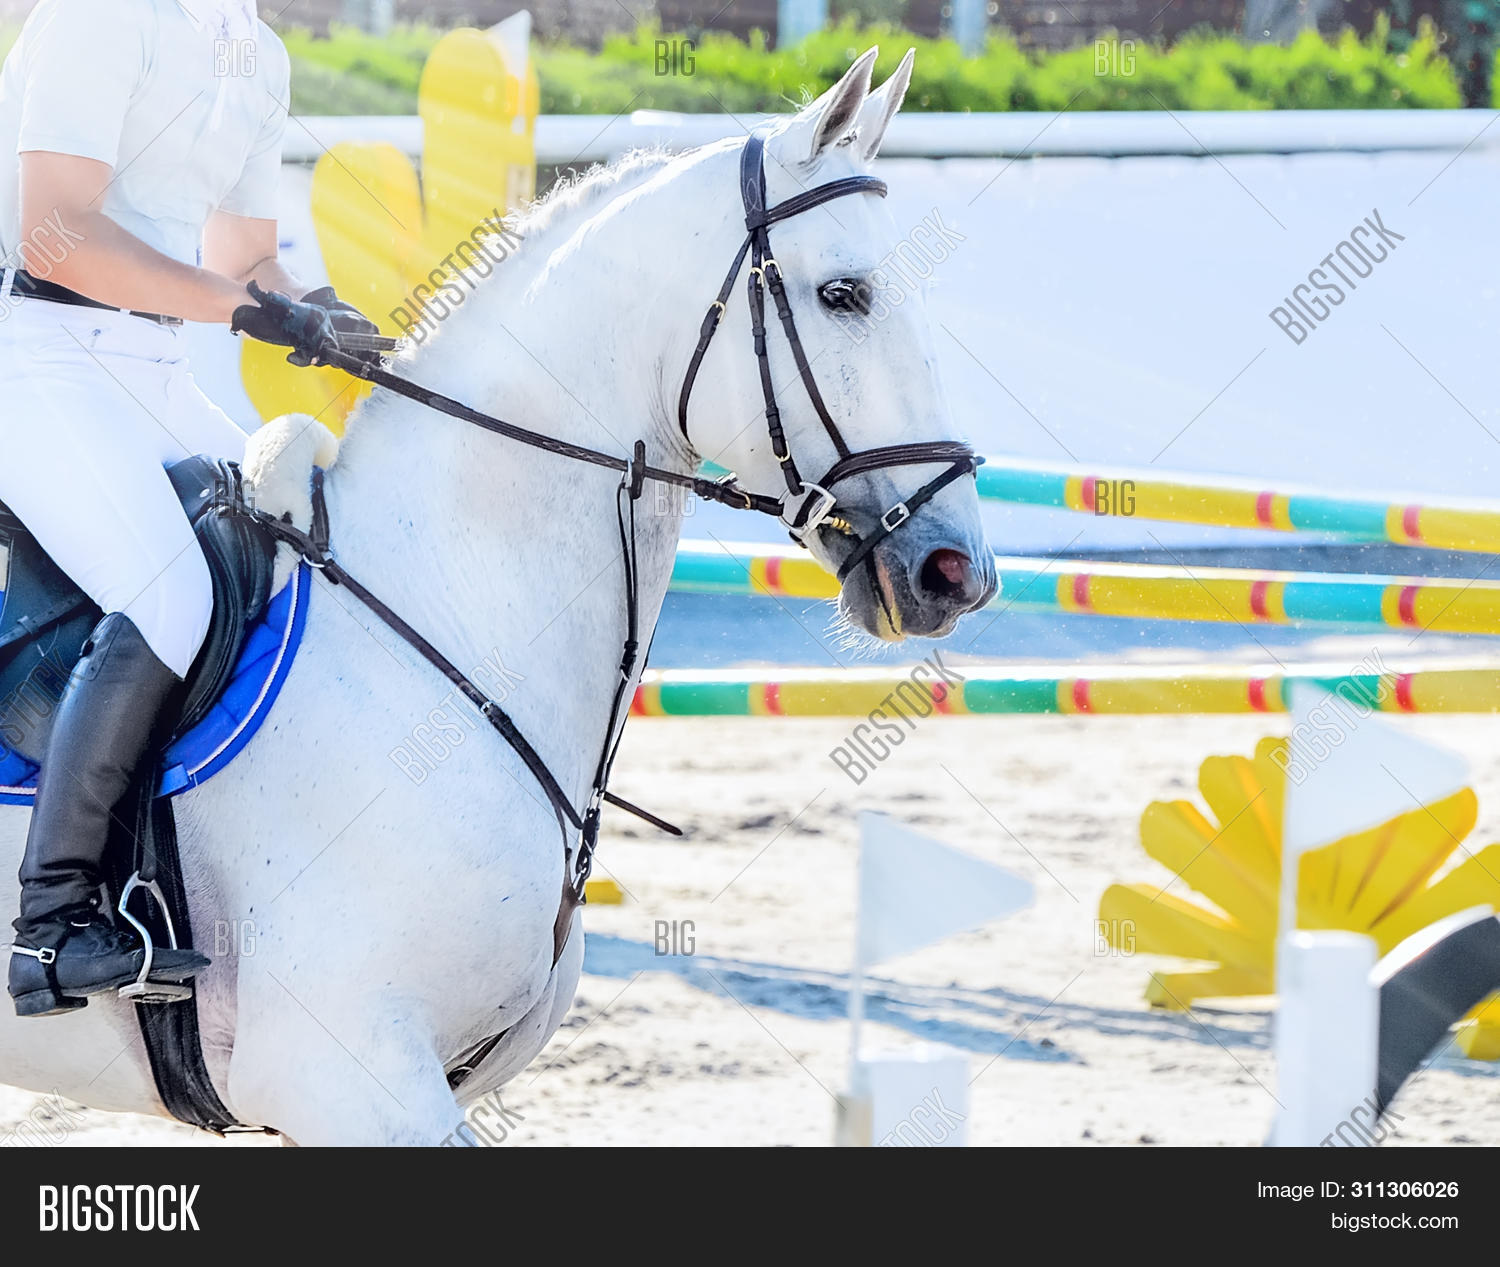 Horse Rider Light Image Photo Free Trial Bigstock